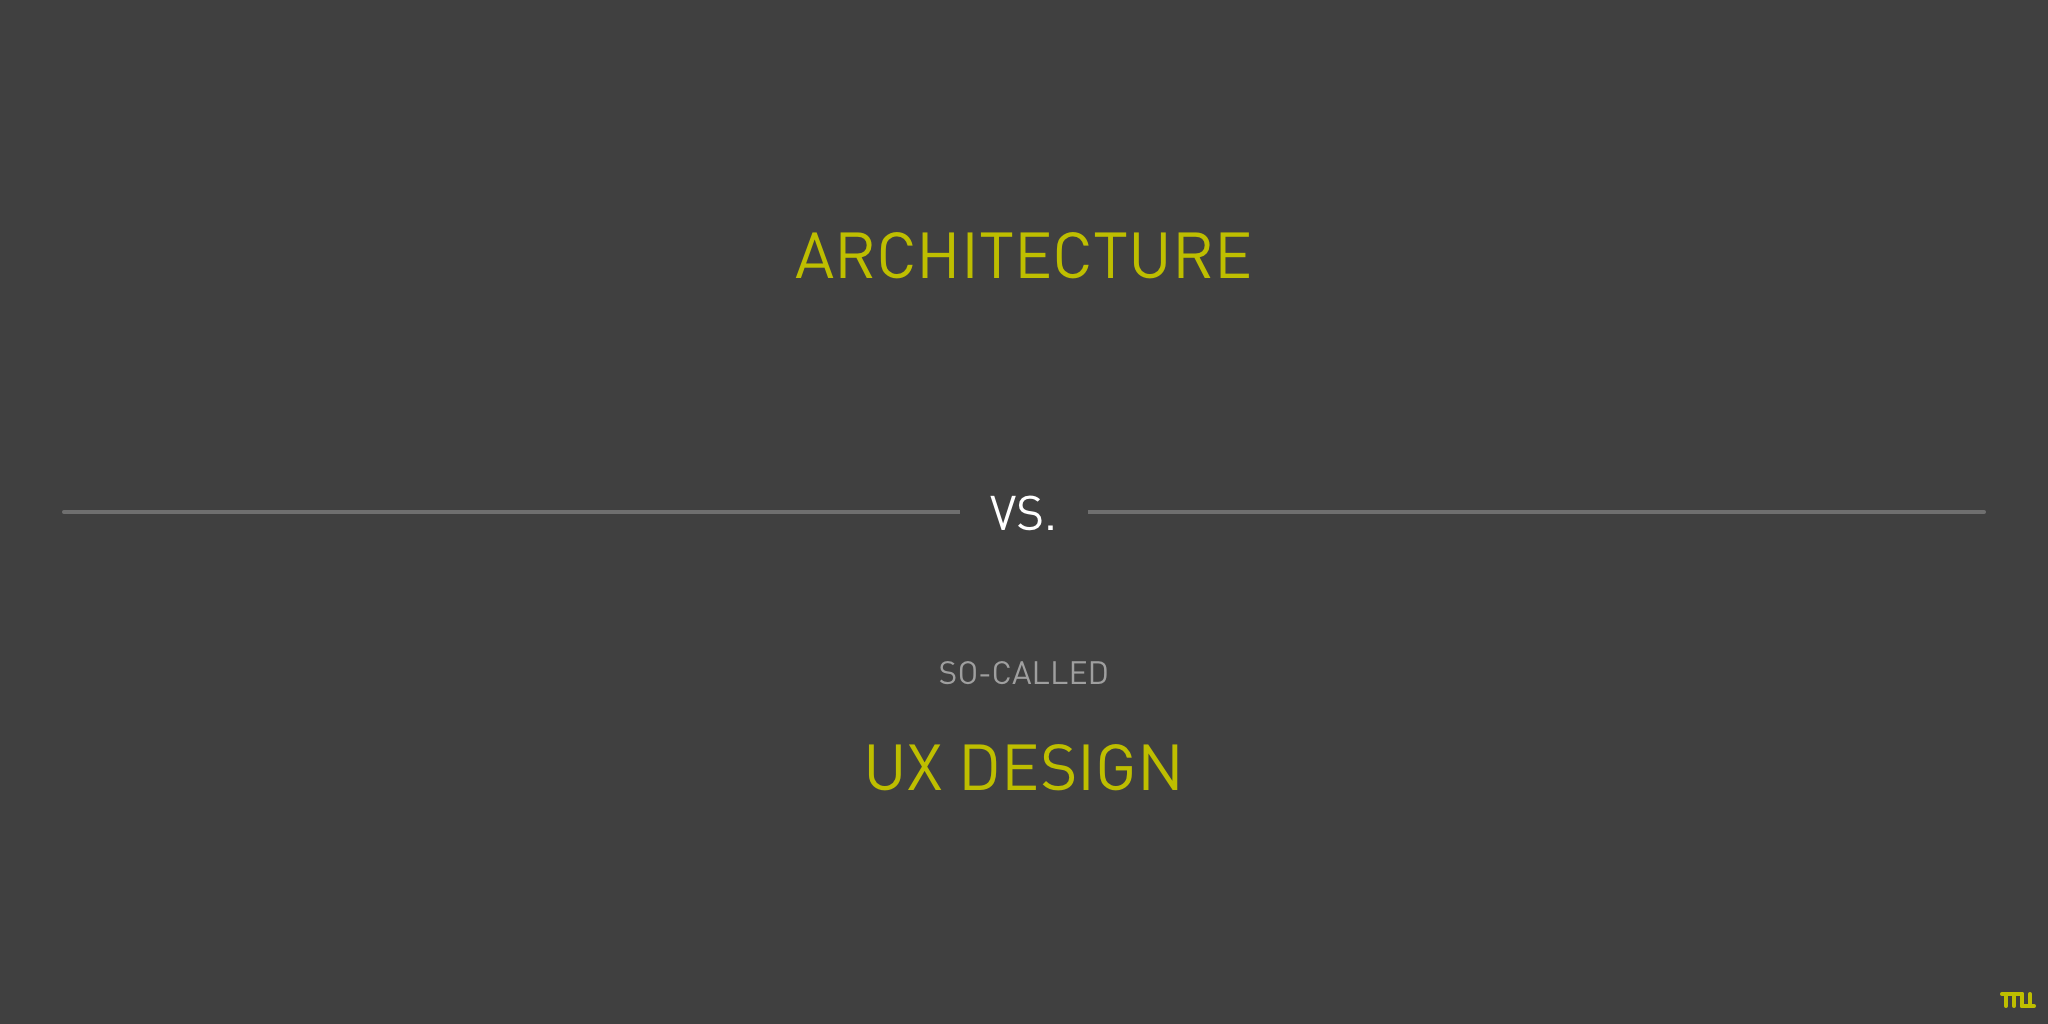 The intersection between Architecture and (so-called) UX Design